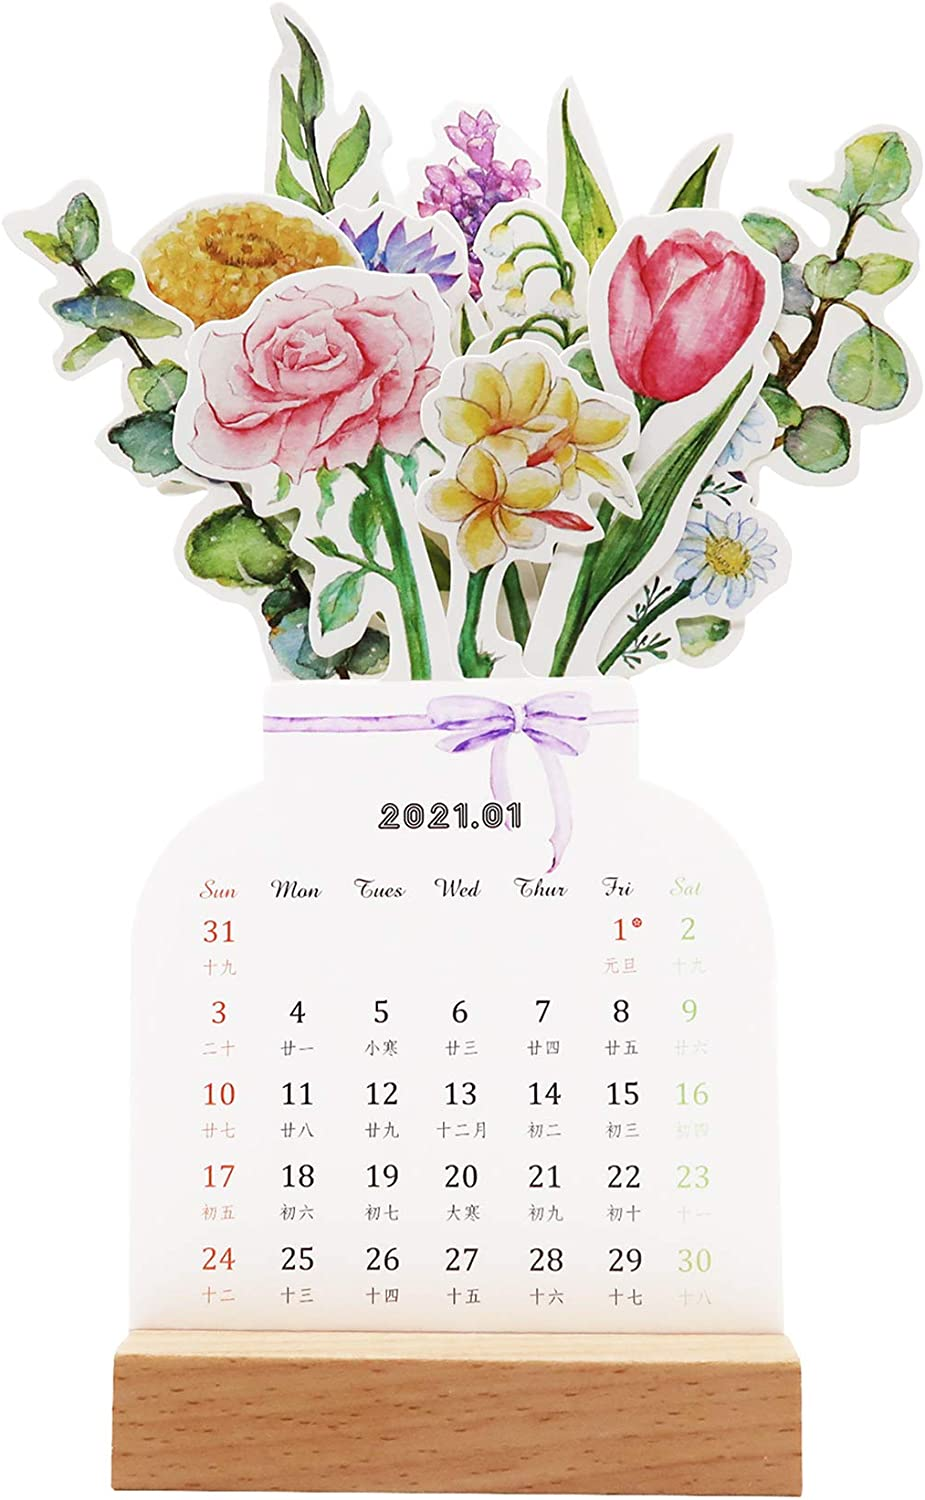 "2021 Creative Flower Desk Calendar, Vase Shaped New Year Monthly Calendar Planner 3.9""x 9.4"""